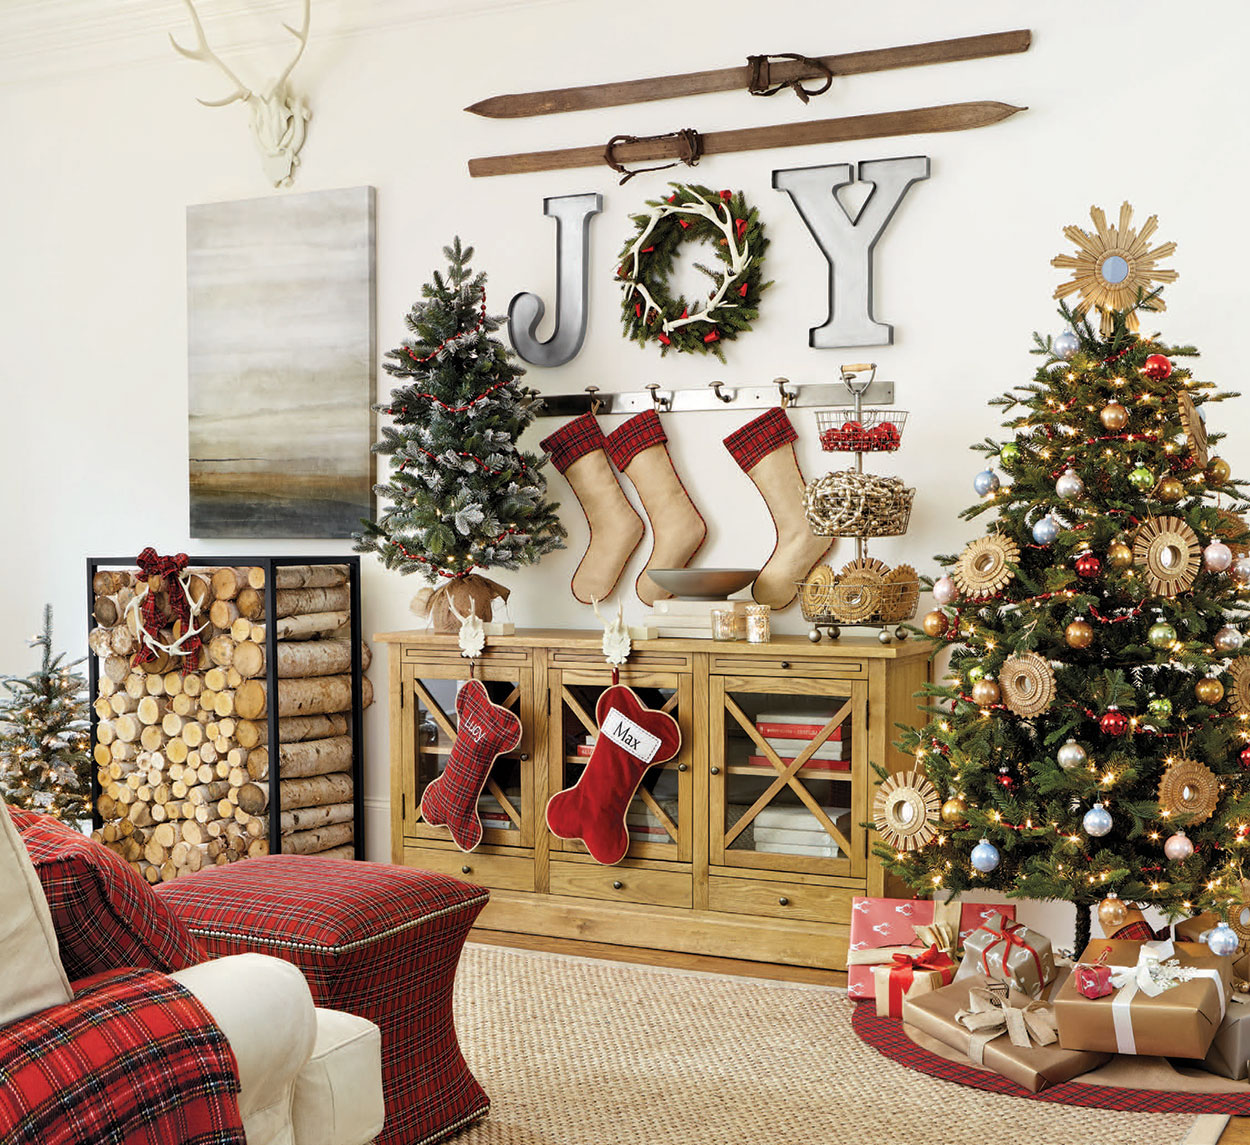 Home Design Ideas For Christmas: Rustic Christmas Decorating Ideas